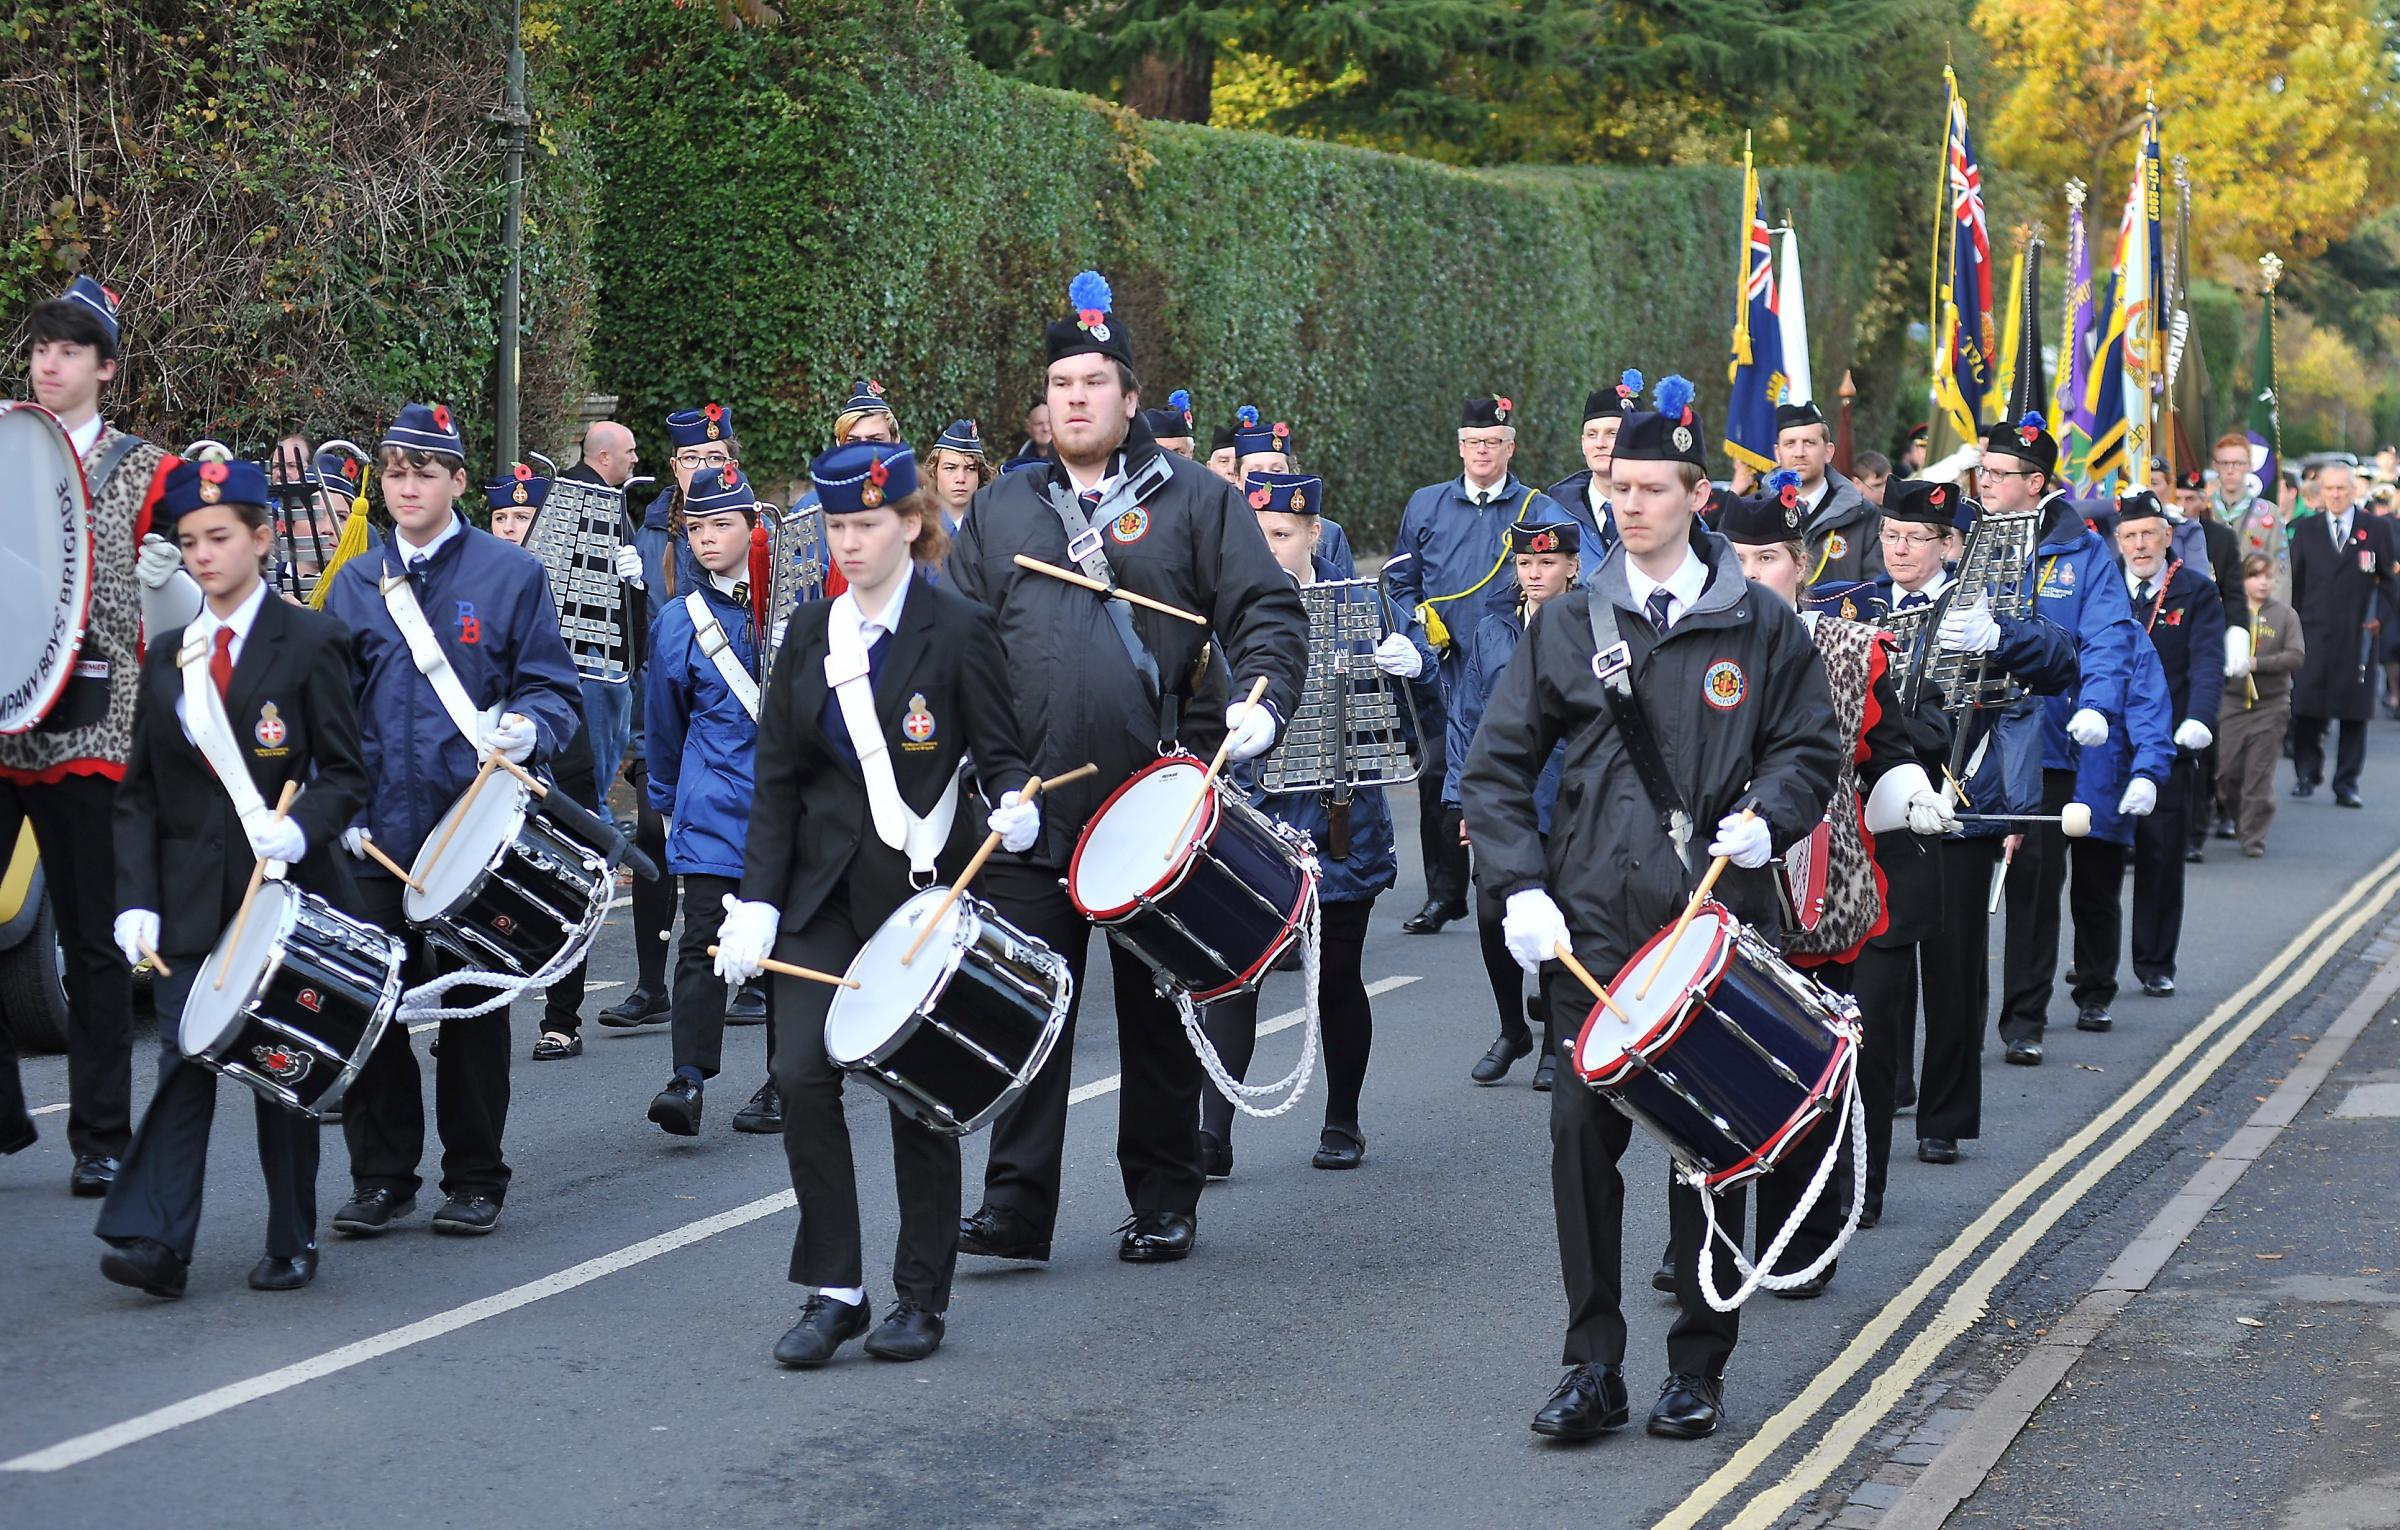 13/11/16. Malvern Remembrance Sunday service. The parade makes its way along Graham Road. Picture by Nick Toogood..